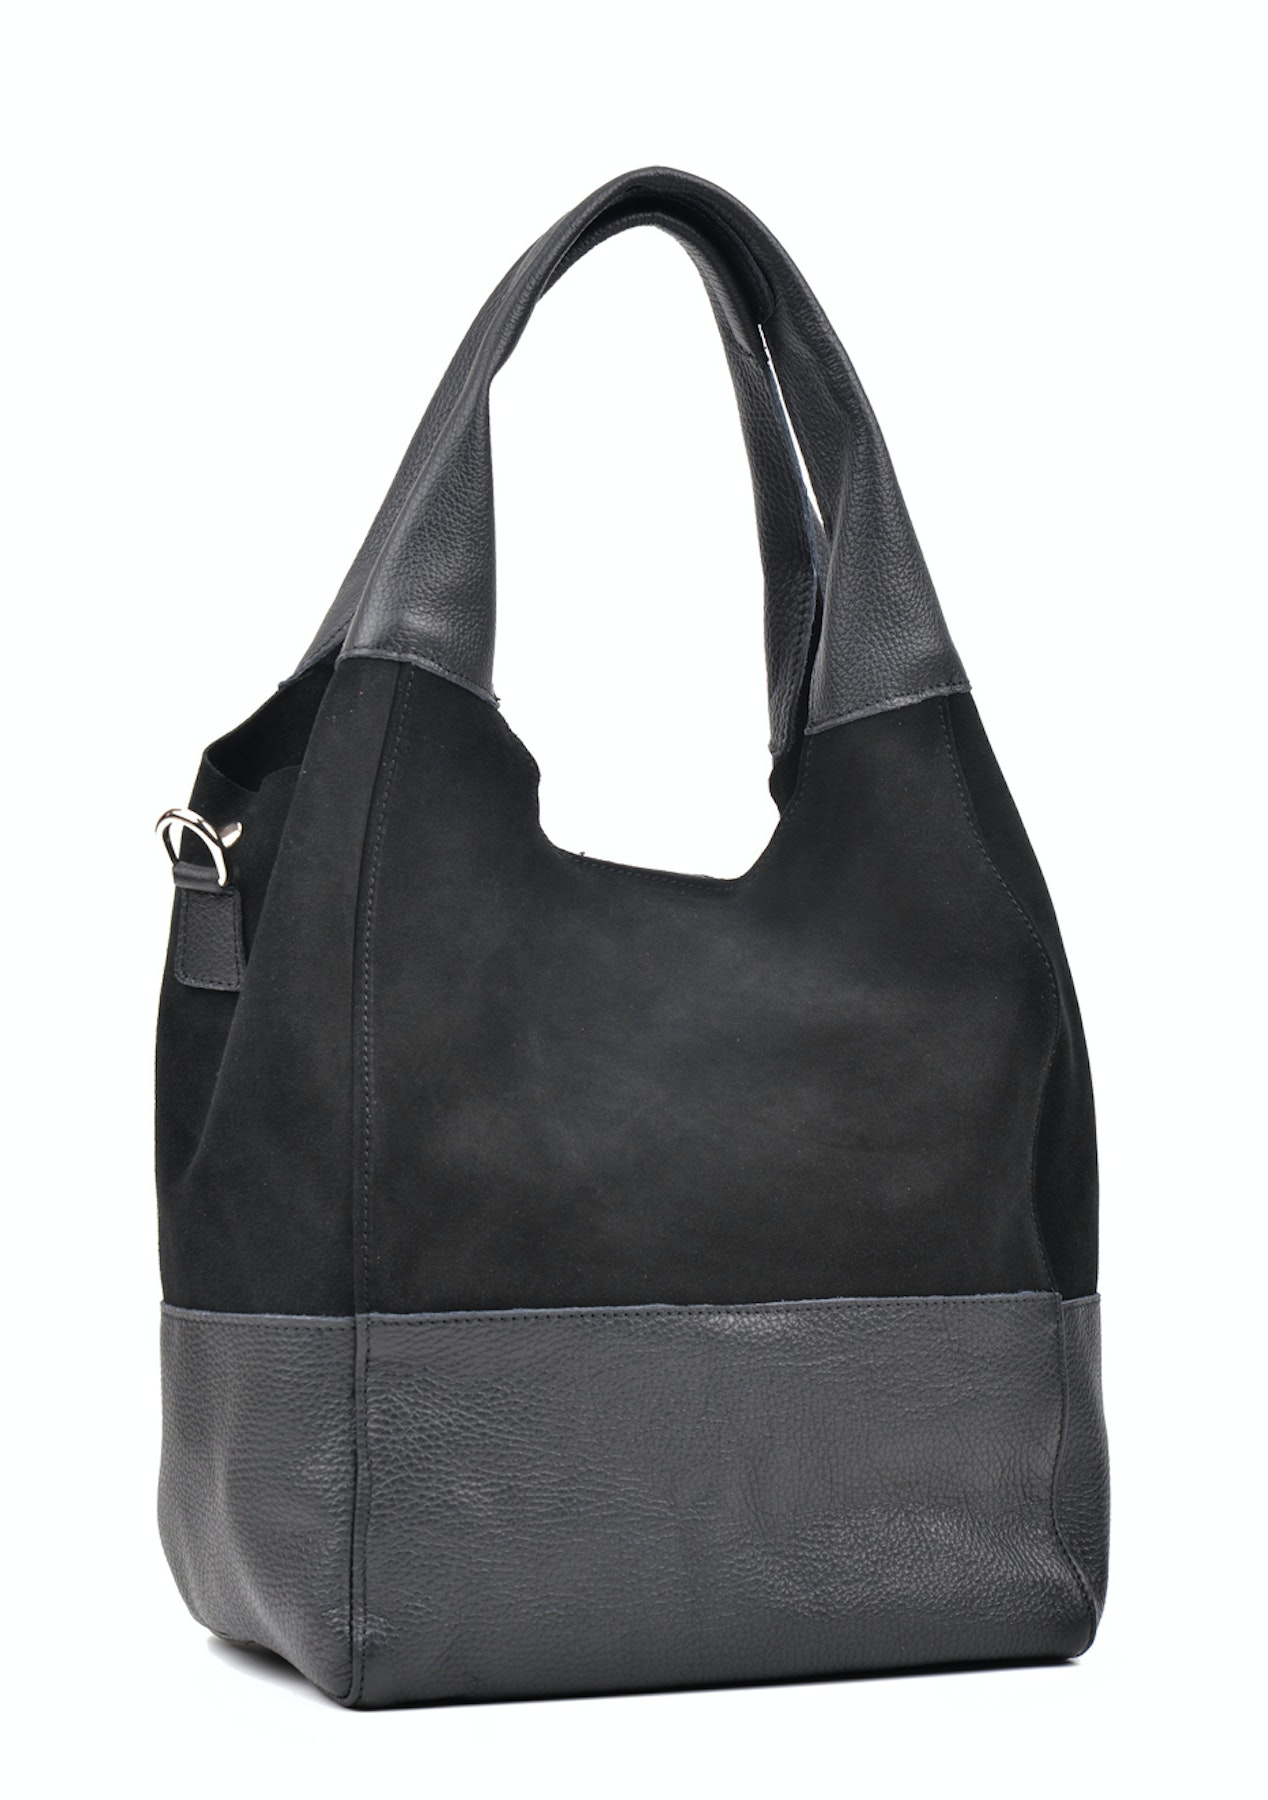 9e970671c1 Luisa Vannini - Hobo Bag - Nero - Monochrome Leather bags up to 74% off -  Onceit